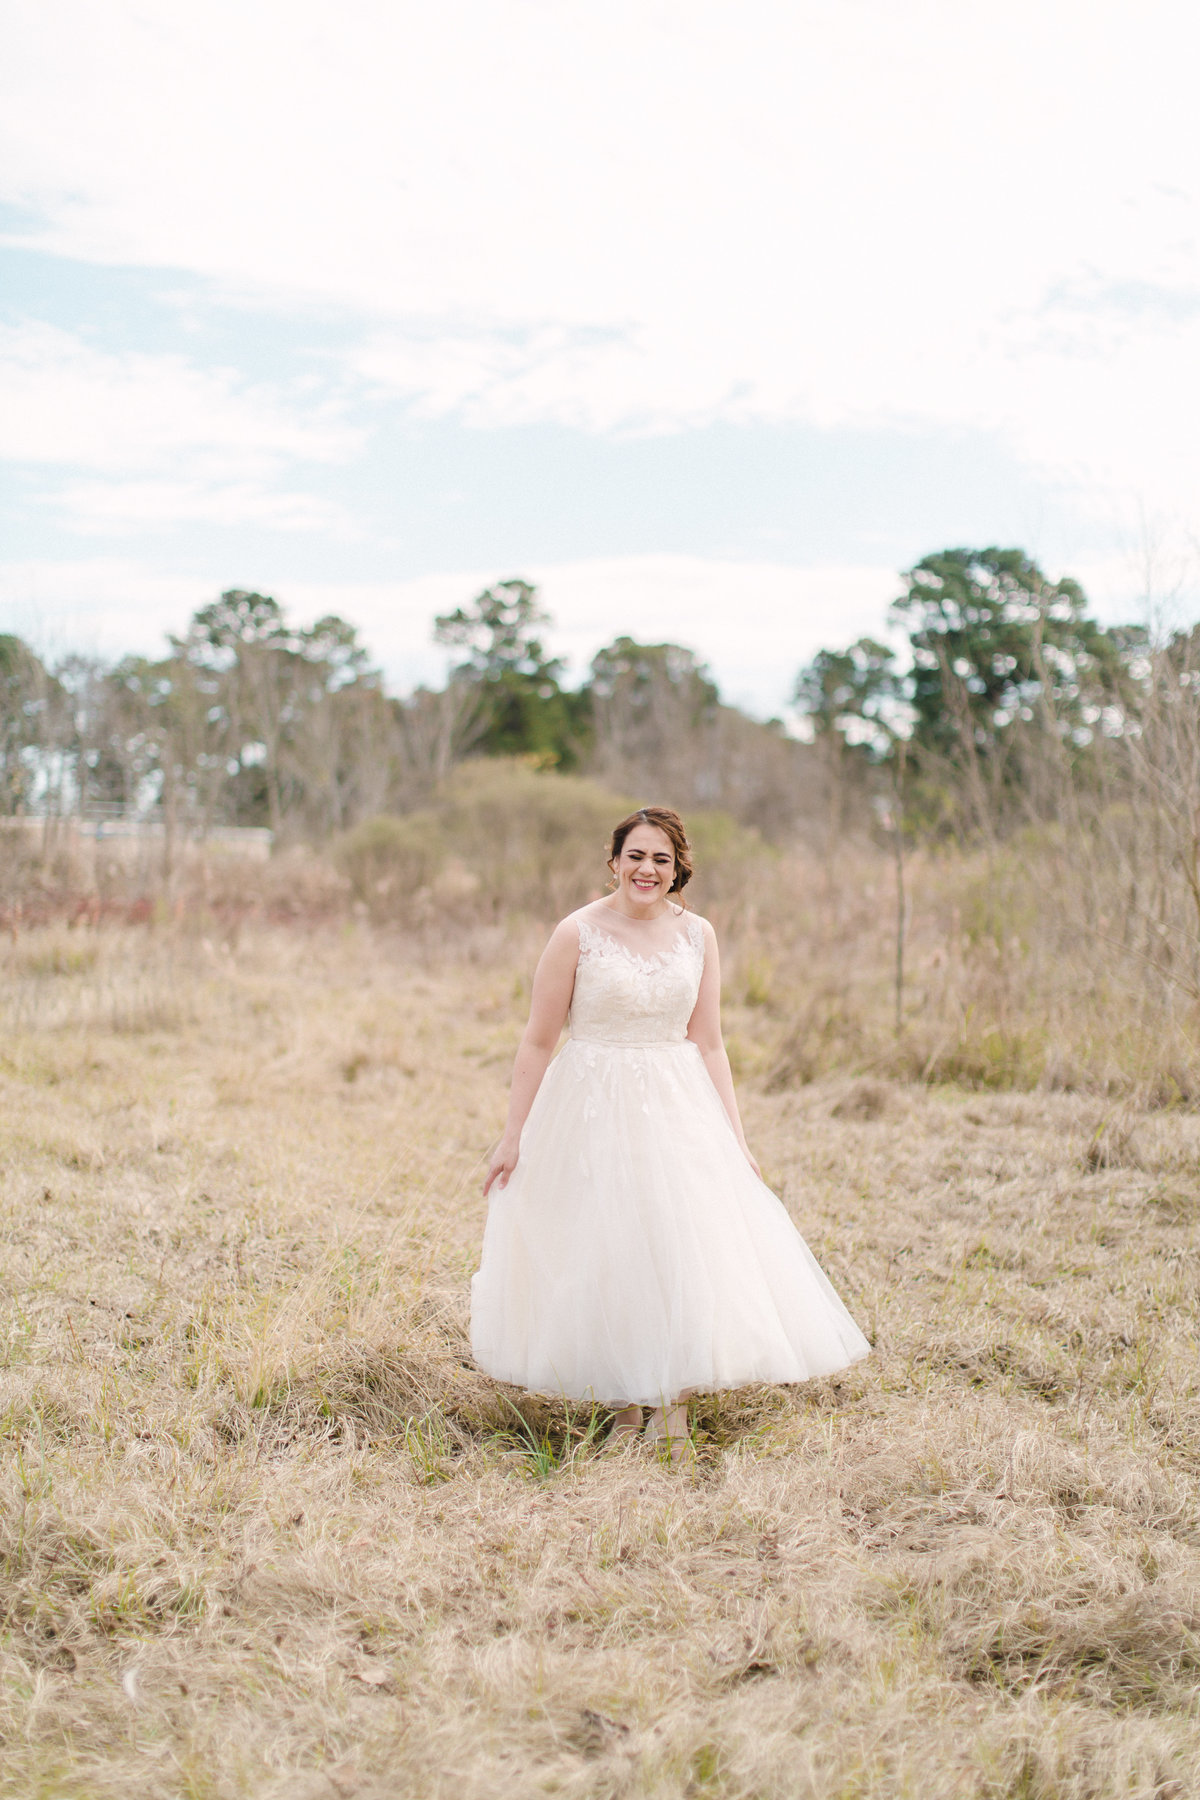 The-woodlands-bridal-session-alicia-yarrish-photography-18